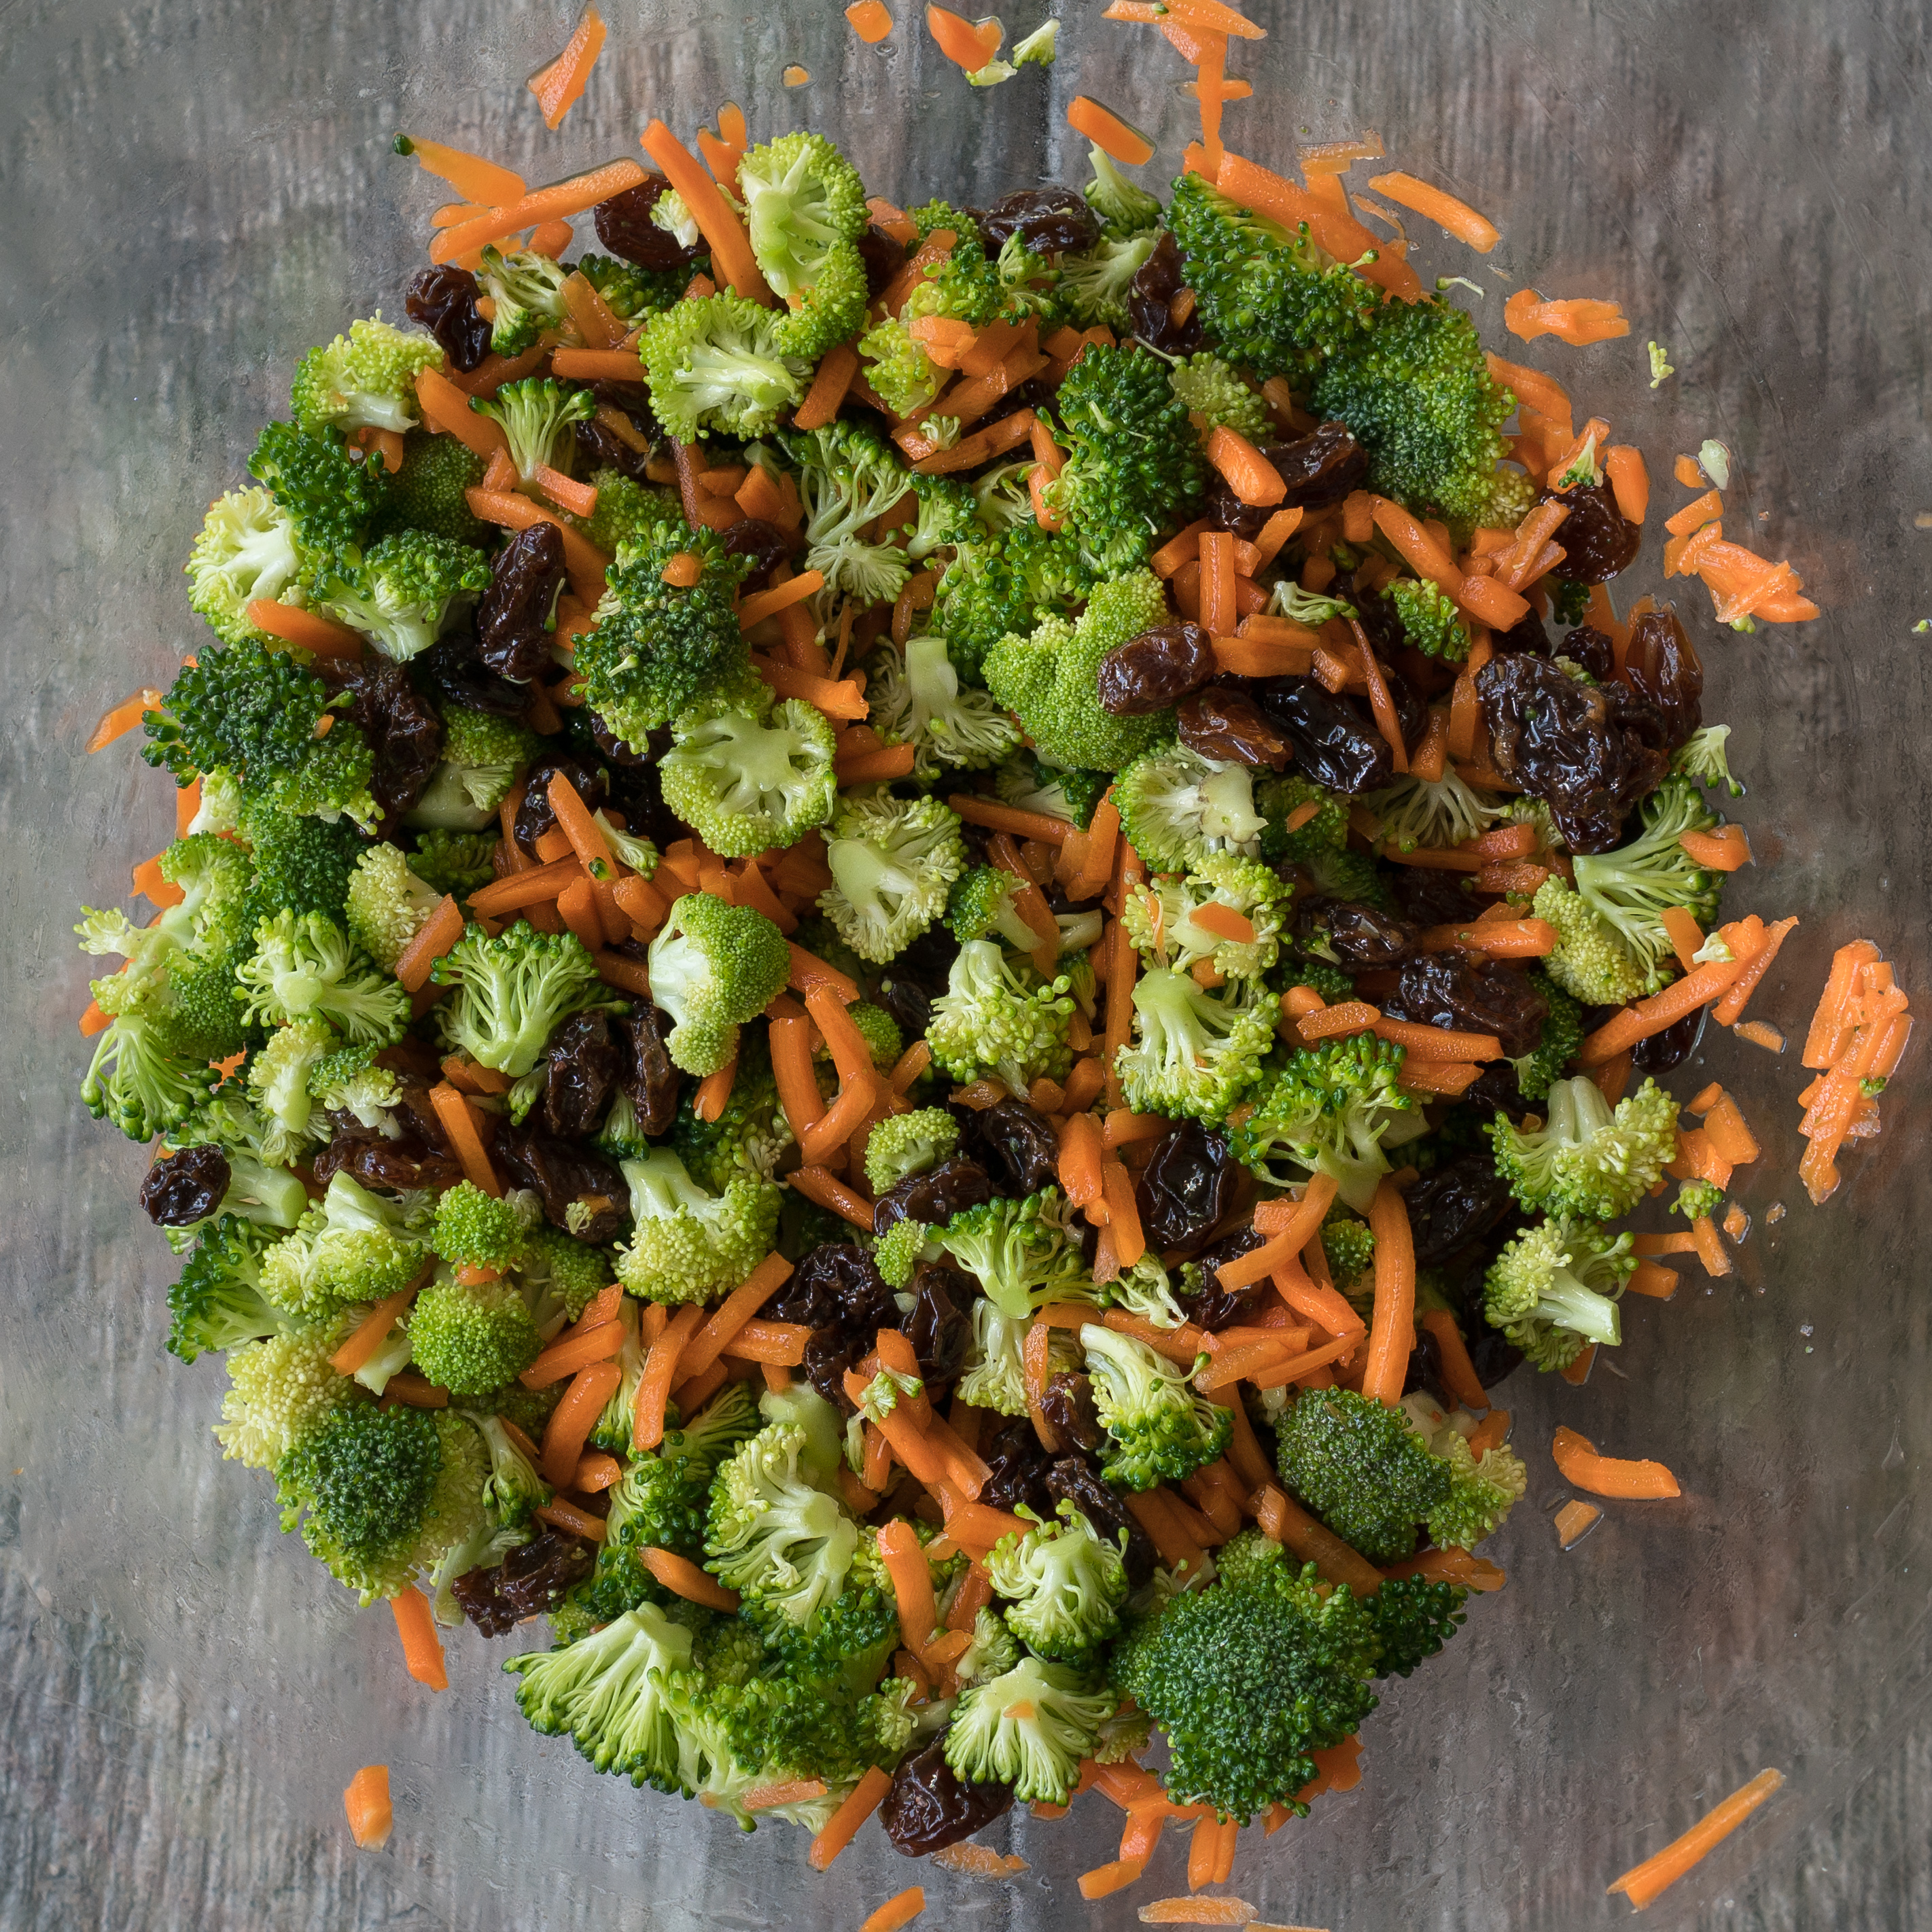 Broccoli Carrot Crunch Salad – Healthy 15-min recipe for Broccoli Carrot Crunch Salad! Trimmed broccoli florets, shredded carrots, sweet raisins, and sliced almonds. Dressed in extra virgin olive oil, golden balsamic vinegar, maple syrup, and a bit of salt! ♥ | freeyourfork.com